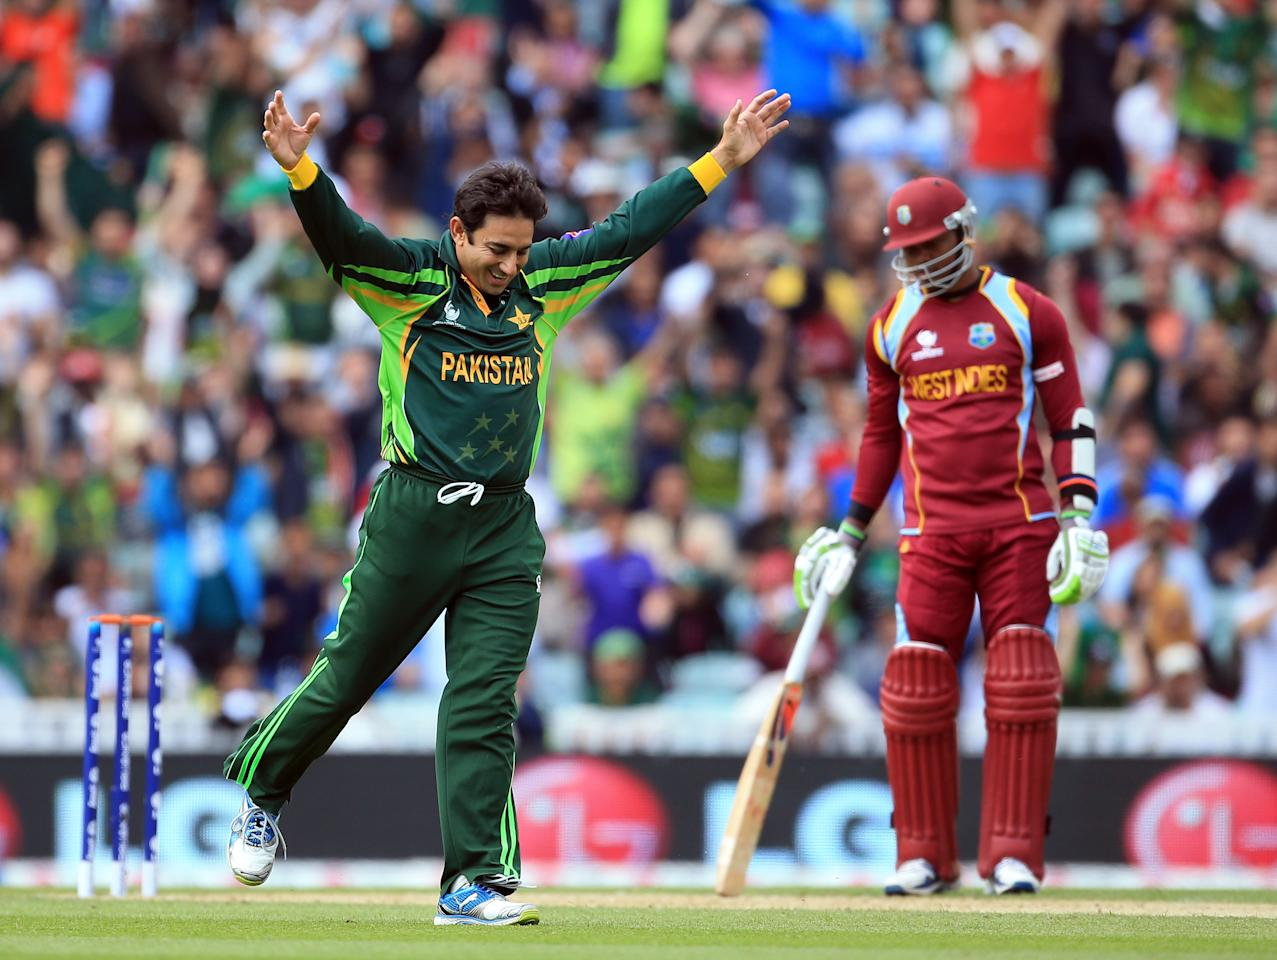 LONDON, ENGLAND - JUNE 07:  Saeed Ajmal of Pakistan celebrates taking the wicket of Chris Gayle of West Indies during the ICC Champions Trophy group B match between West Indies and Pakistan at The Oval on June 7, 2013 in London, England.  (Photo by Richard Heathcote/Getty Images)